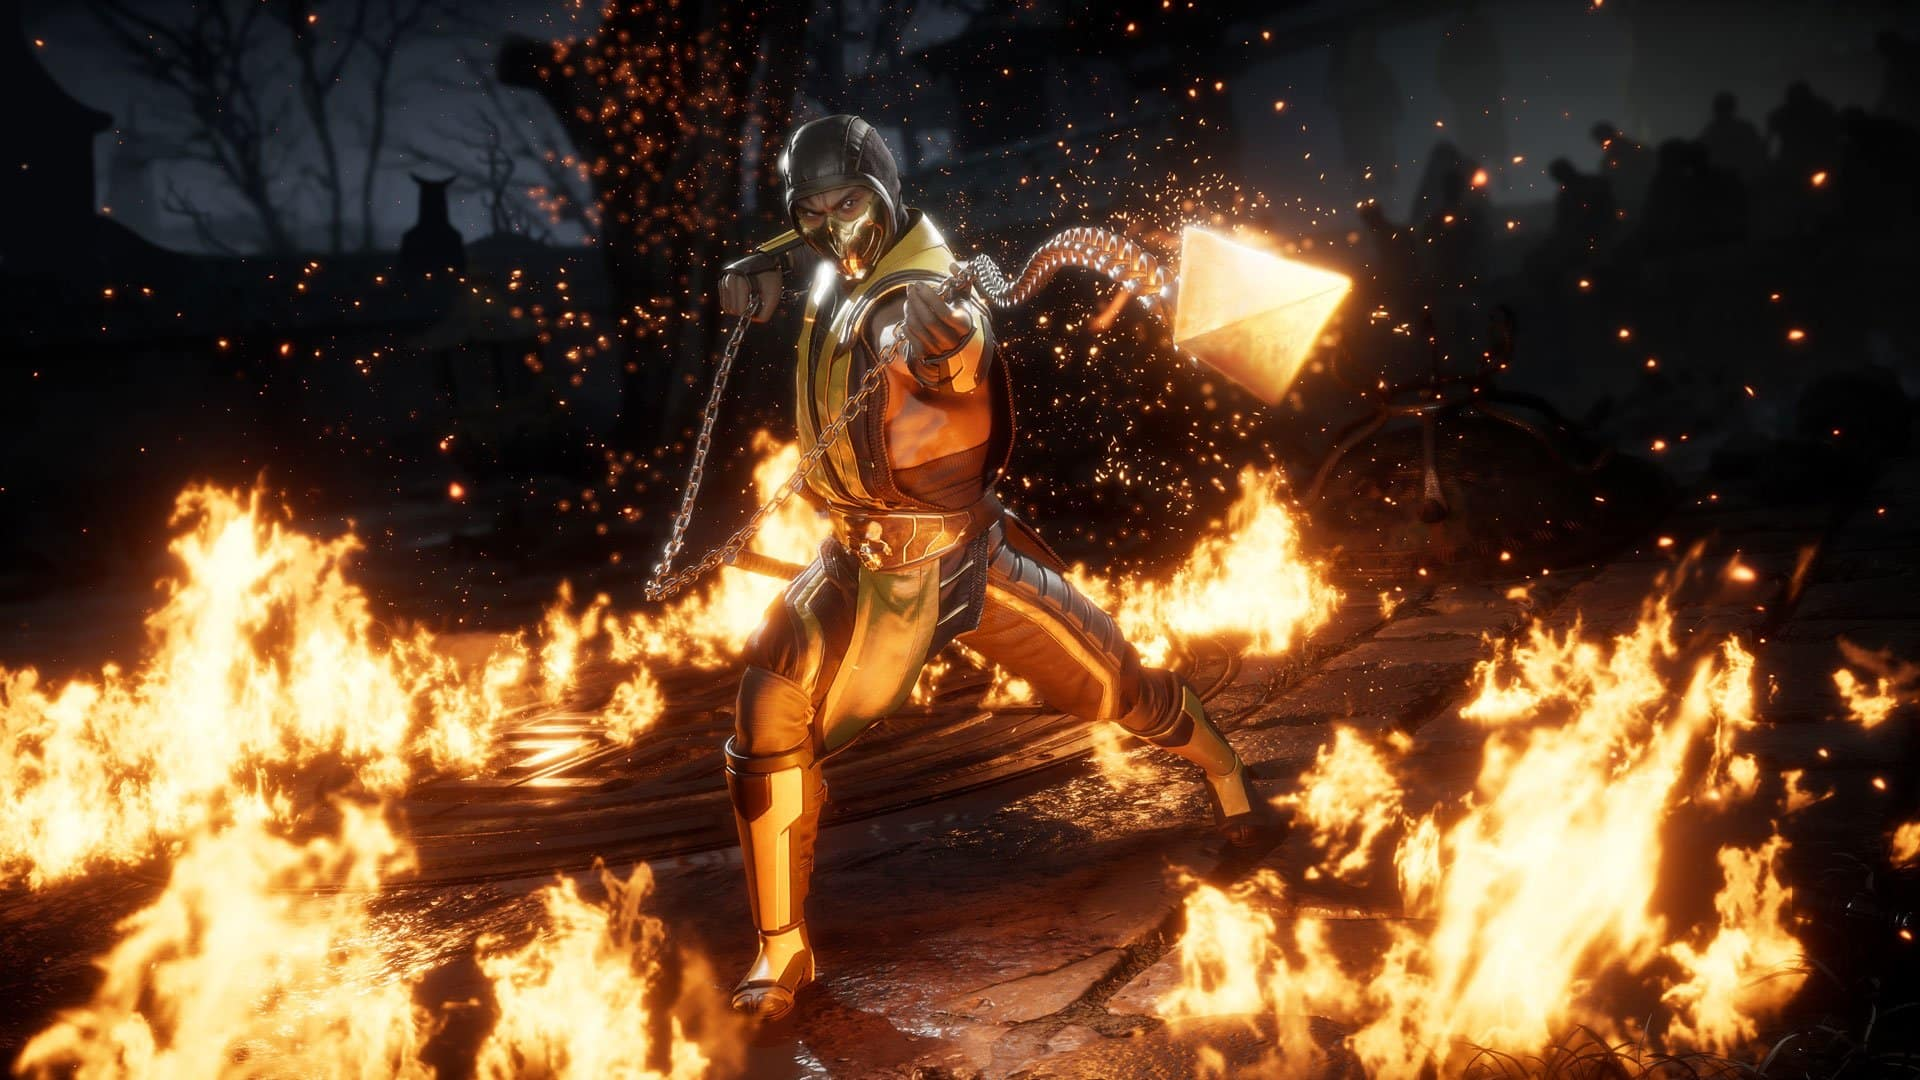 Get Over Here And Enter Our Awesome Mortal Kombat 11 Competition